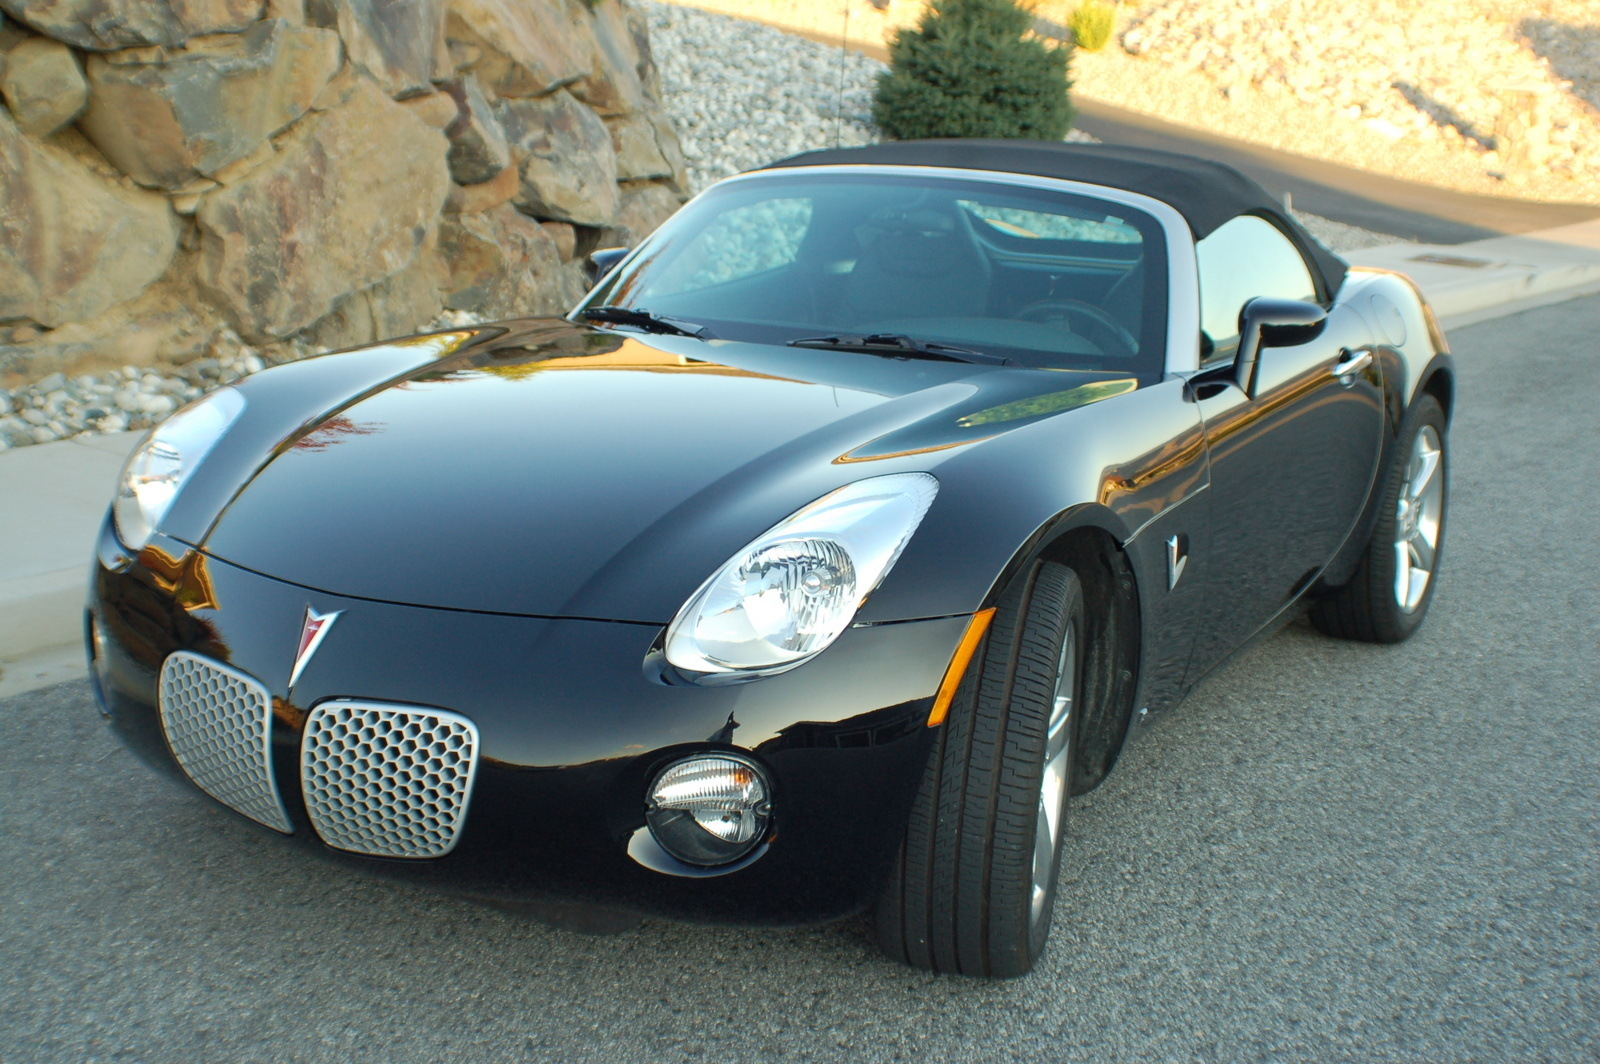 Chrysler crossfire reviews research new used models - Picture Of 2007 Pontiac Solstice Exterior Gallery_worthy